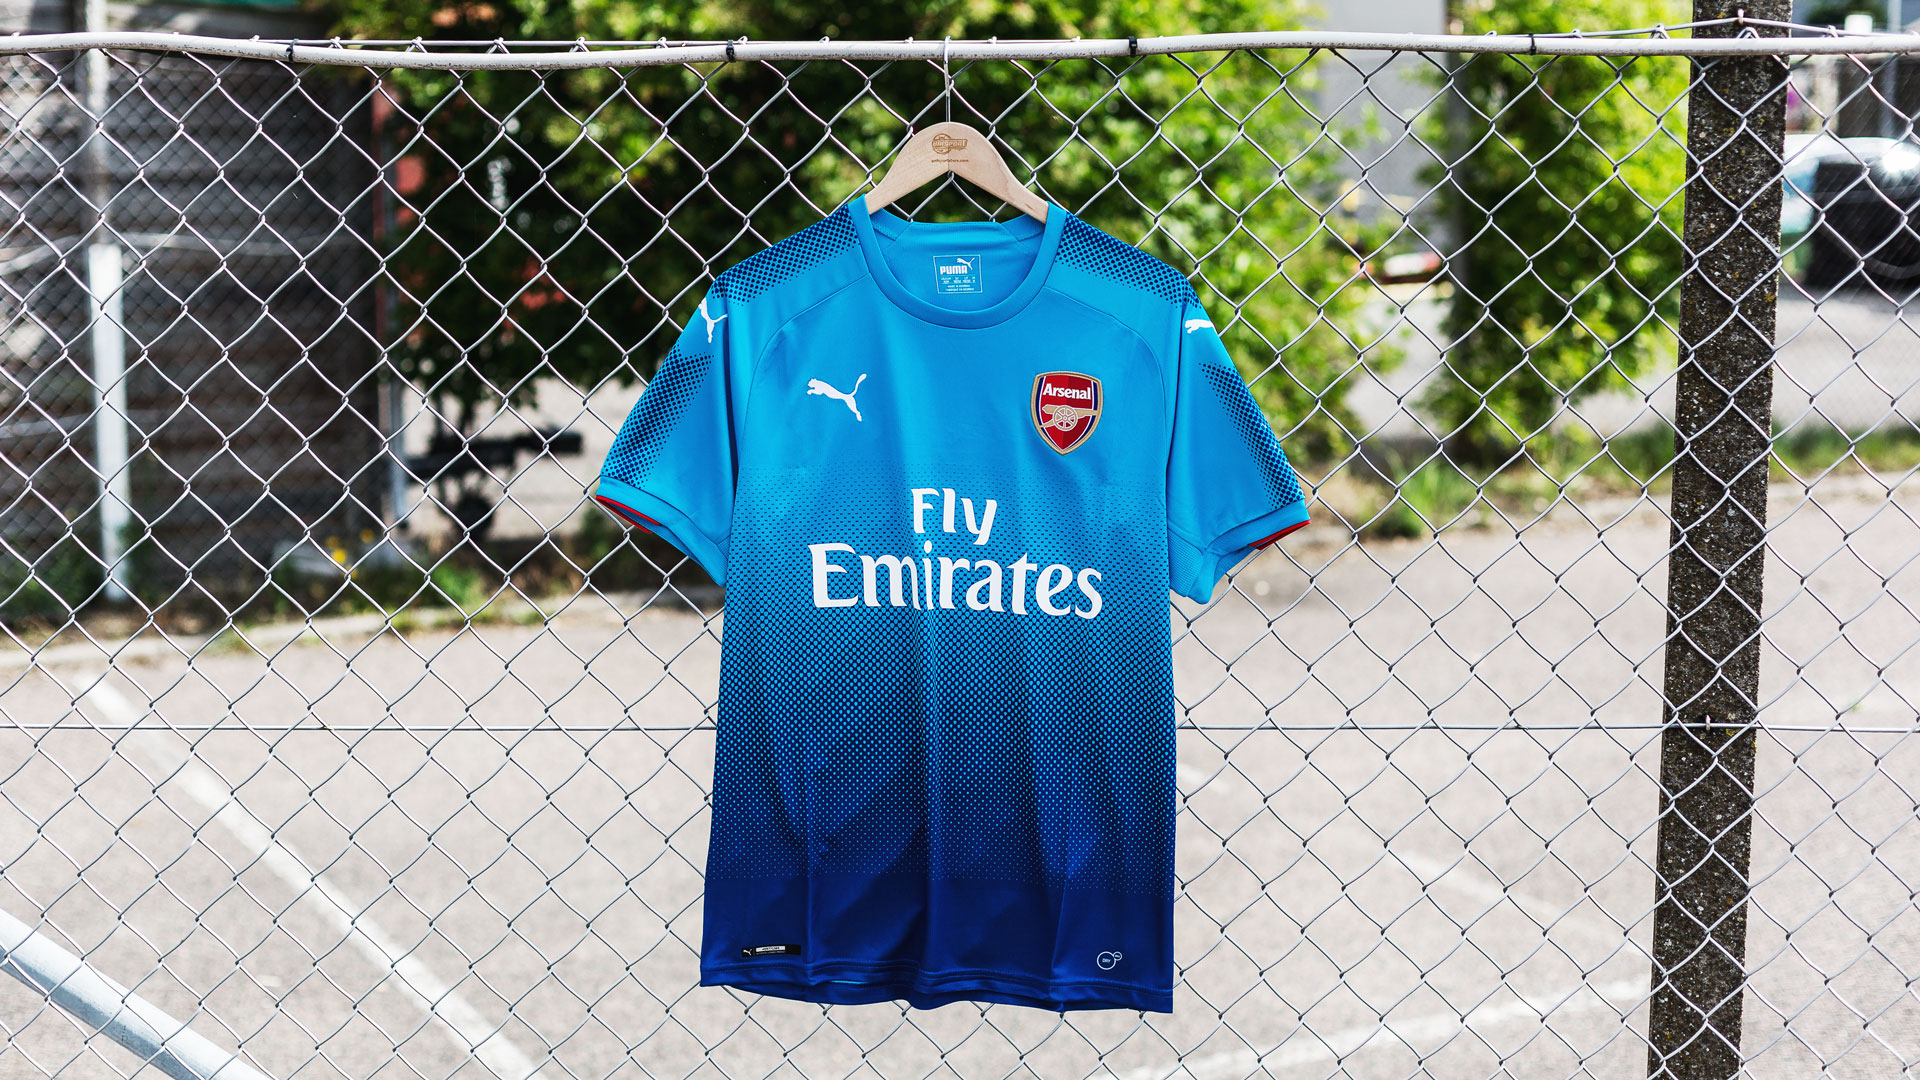 online retailer b92b0 f7c79 New away shirt for Arsenal